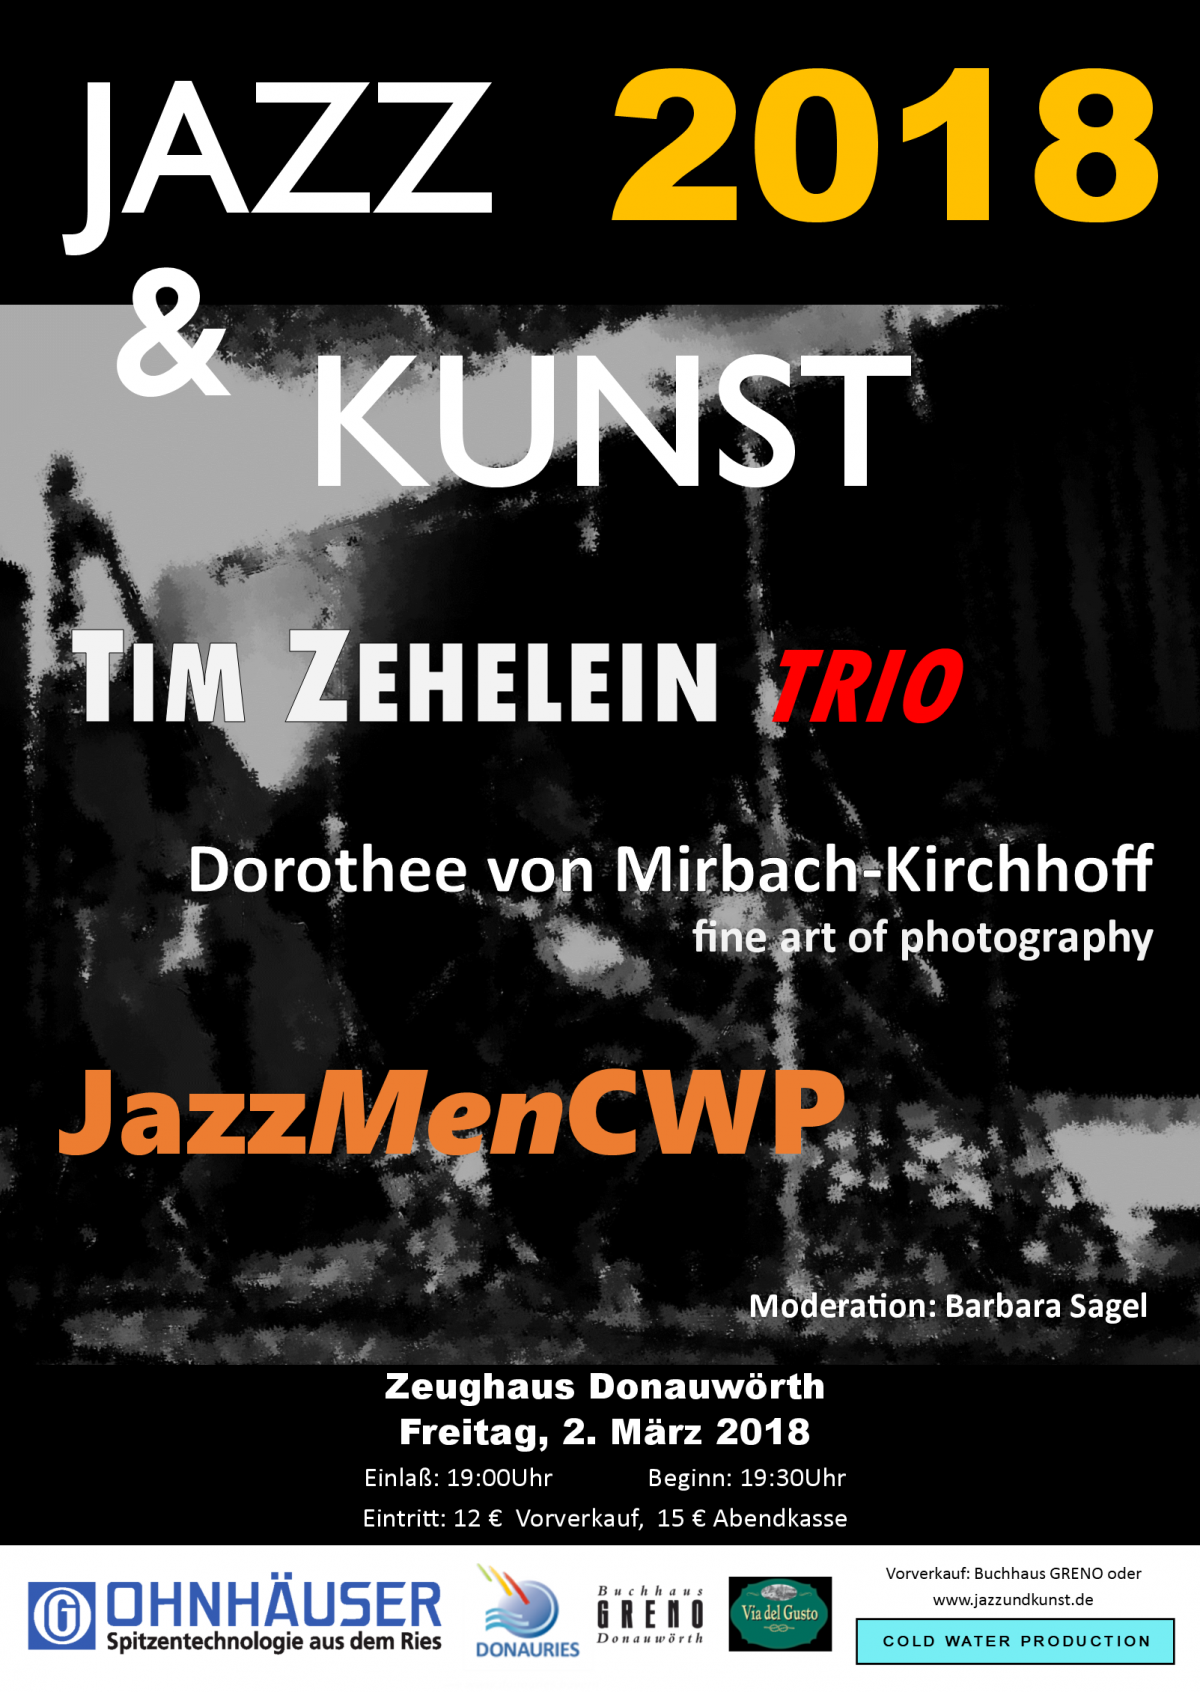 Jazz & Kunst 2018 in Donauwörth